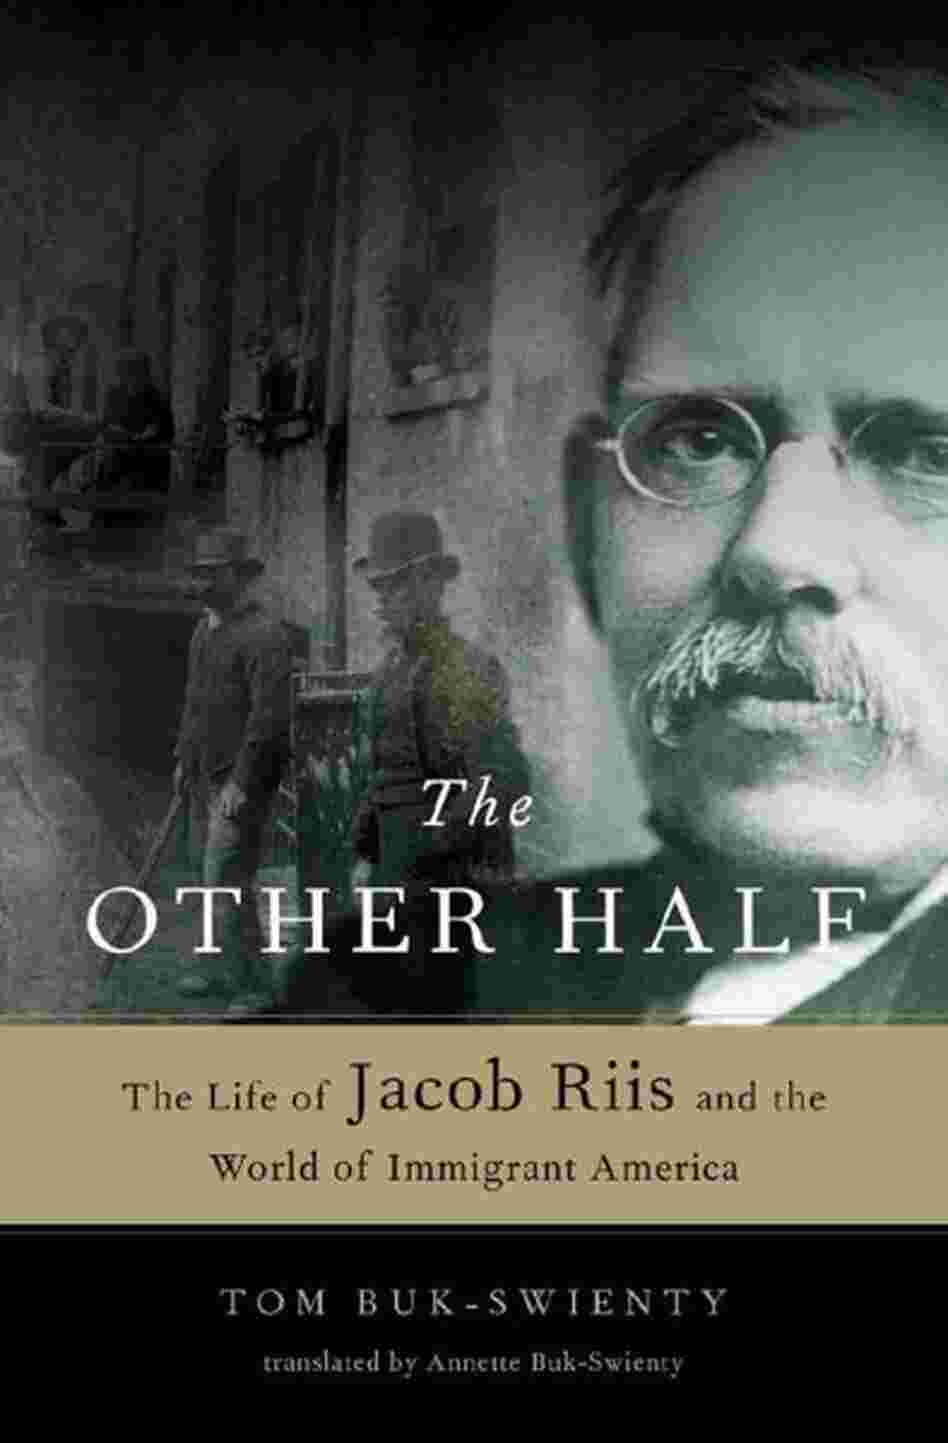 how the other half lives review essay Some present the lives of colorful mathematicians others describe important applications of mathematics d other scientists have written books to explain their fields to non-scientists, but have necessarily had to omit the mathematics, although it provides the foundation of their theories.